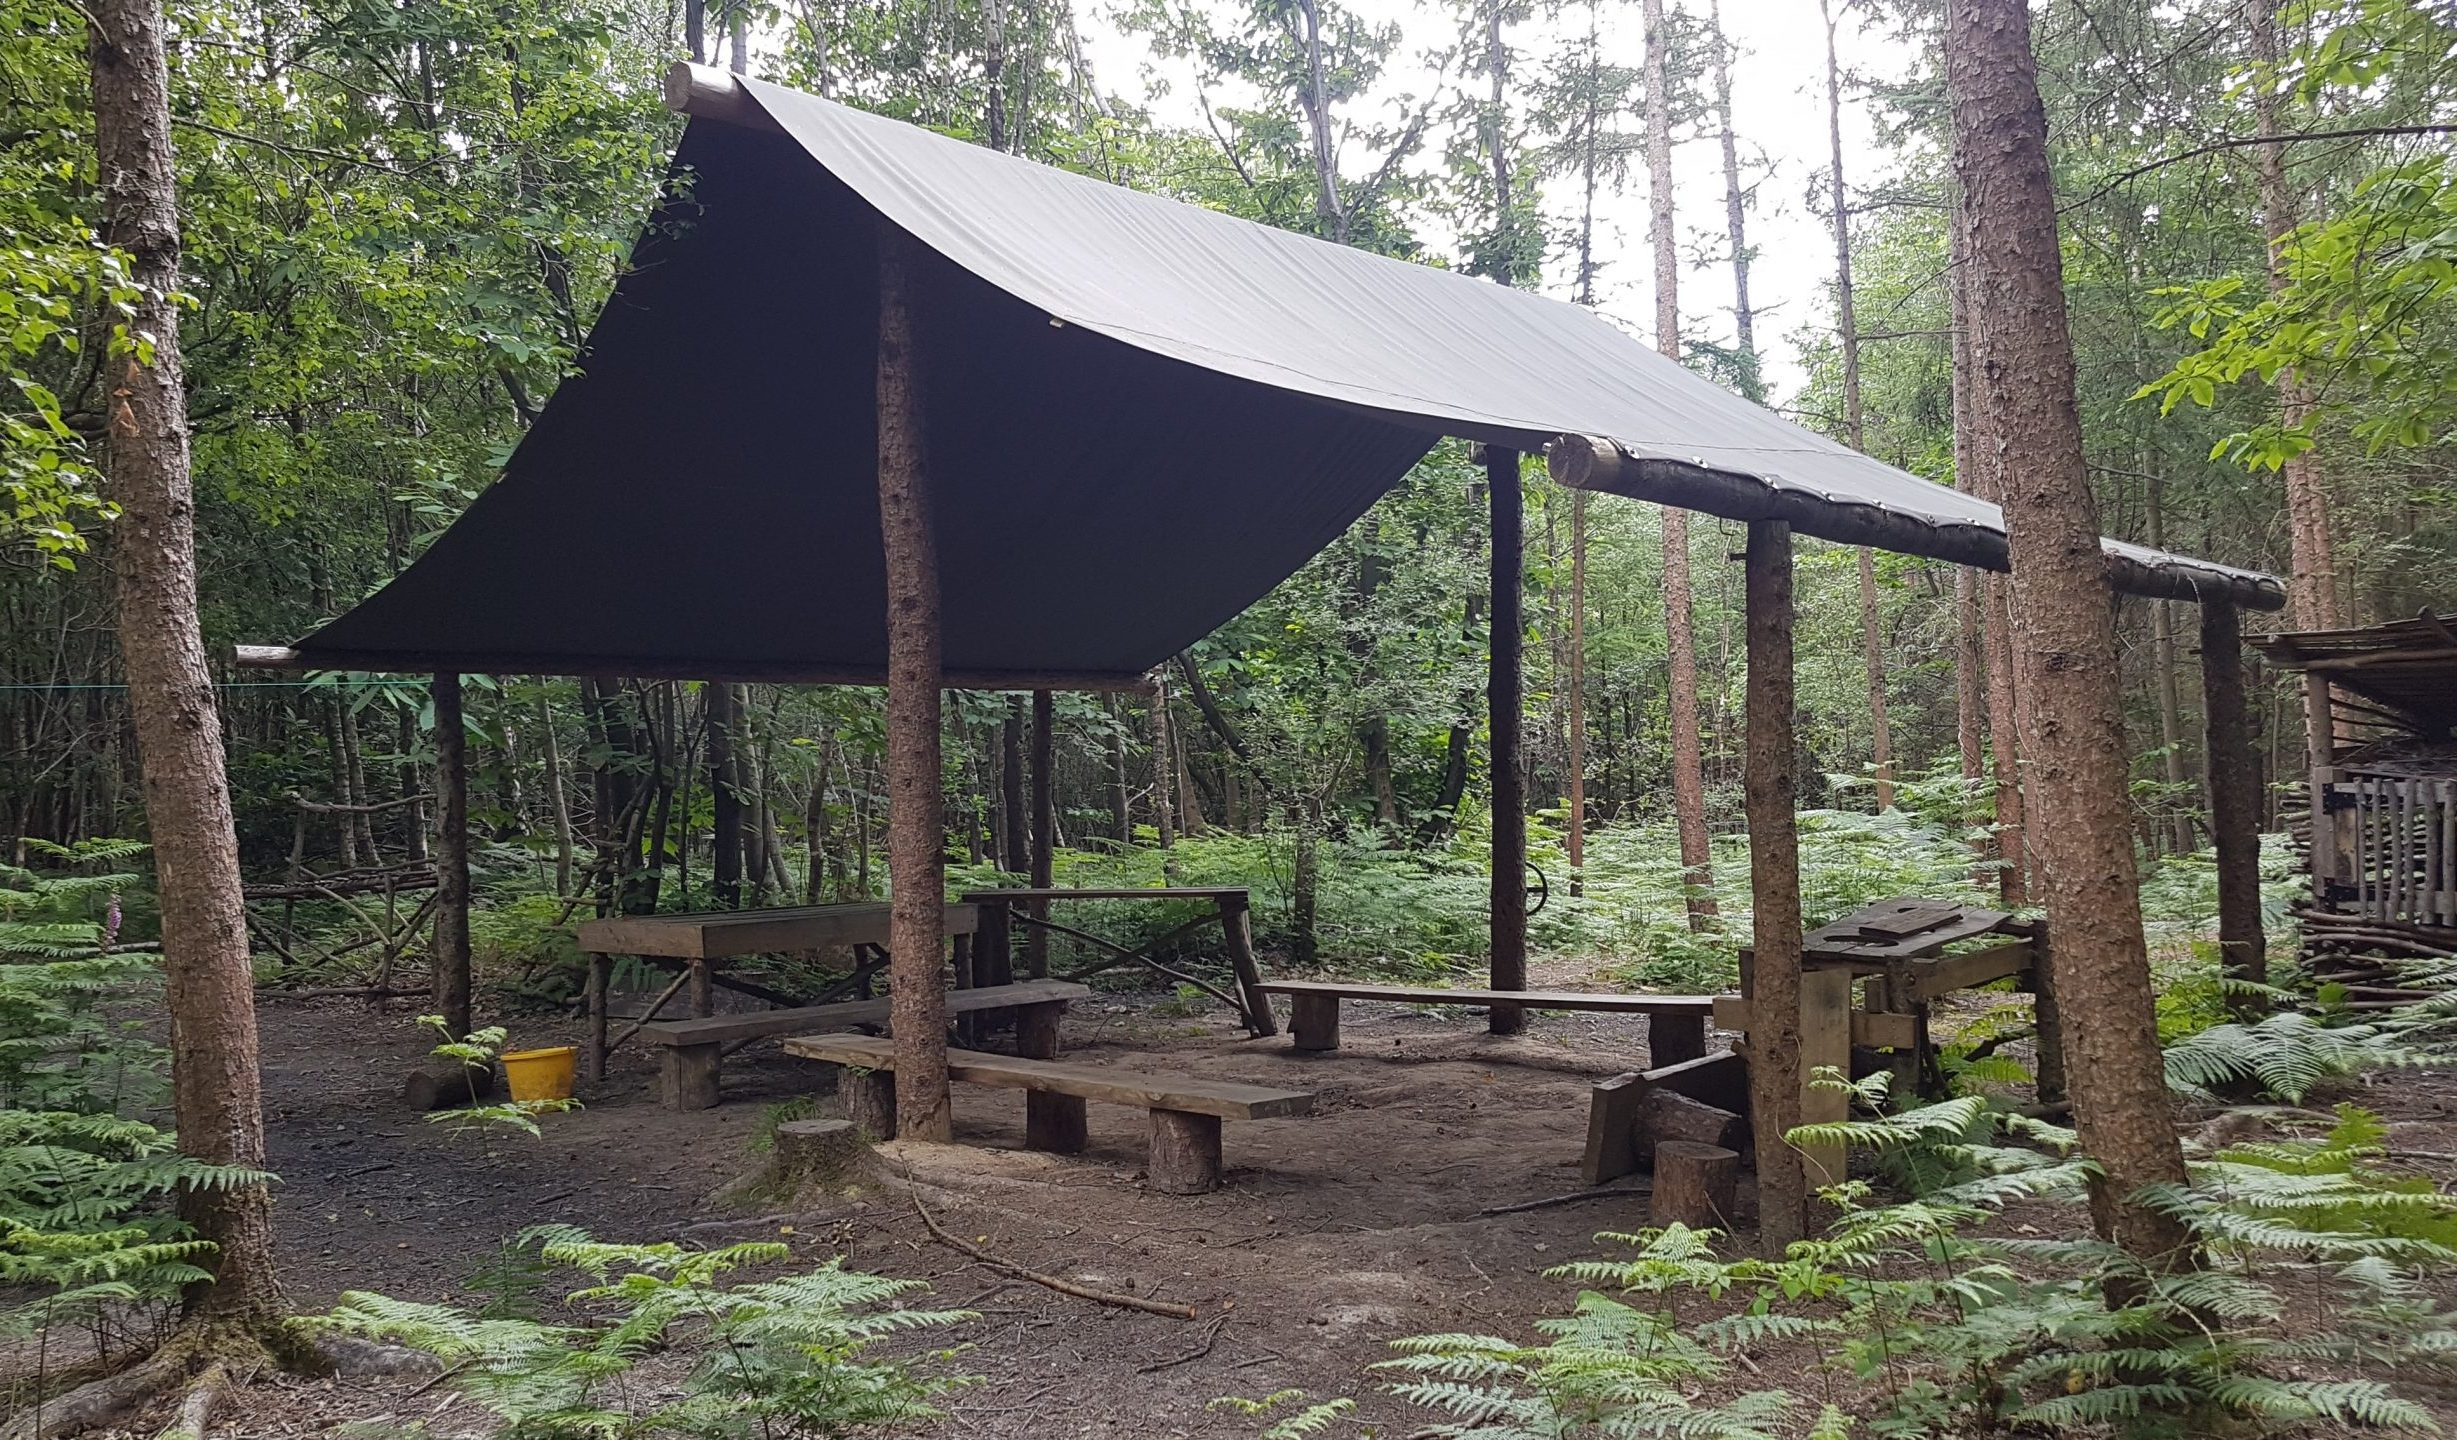 seating area in the woods with canvas covering